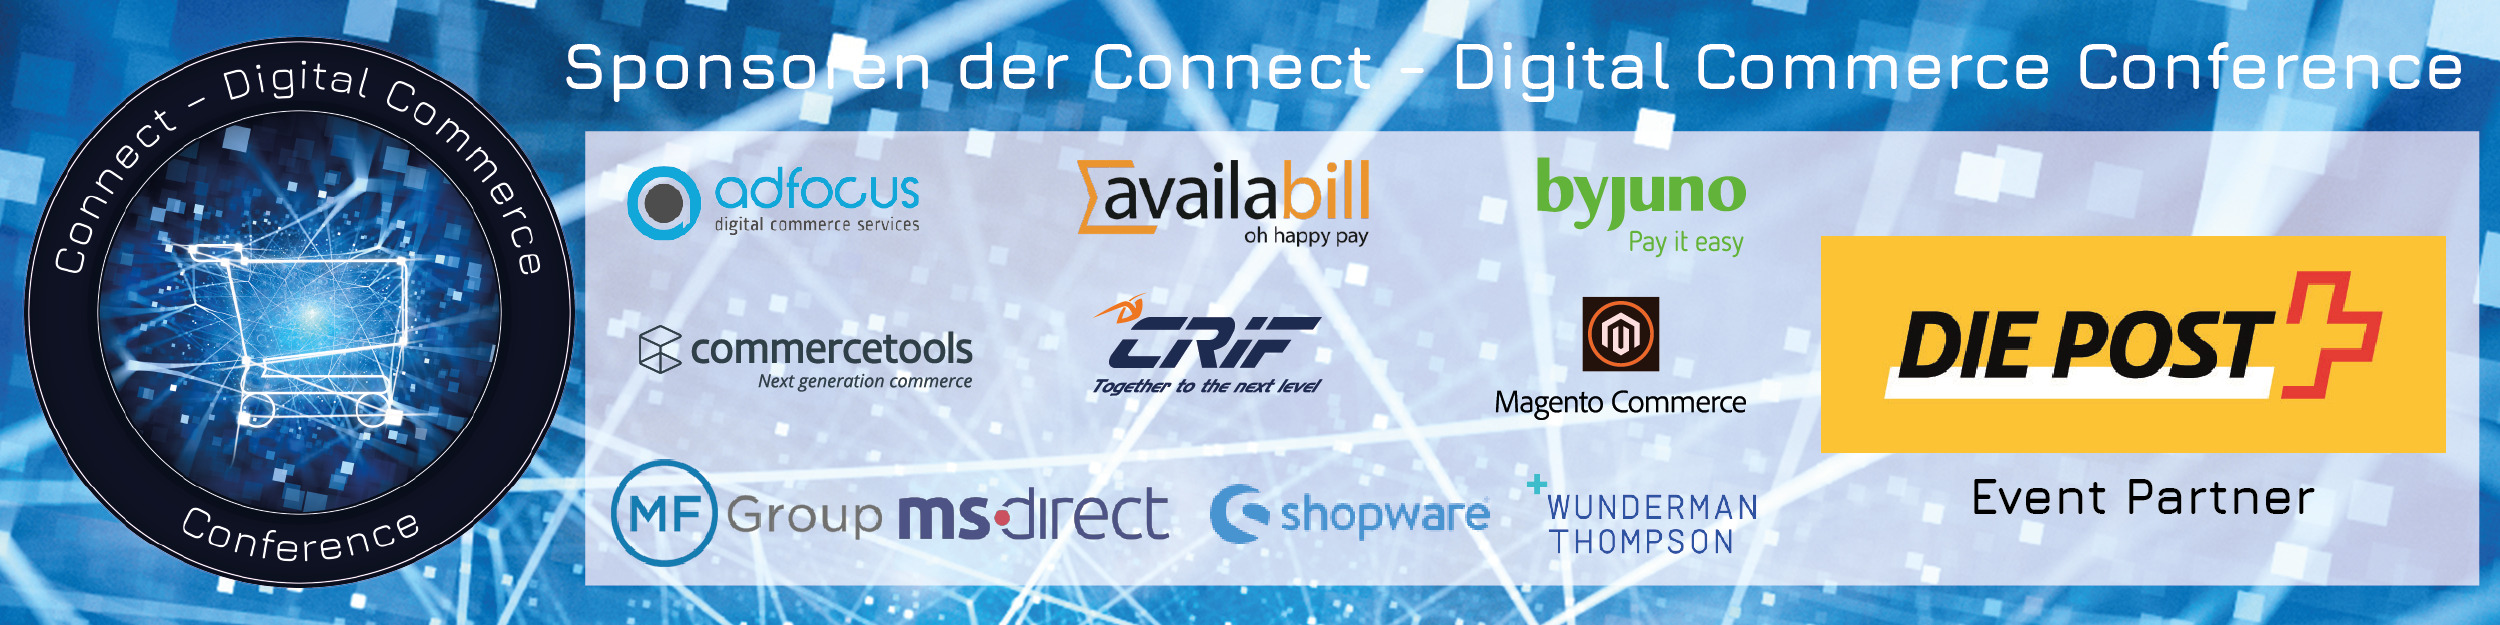 https://digital-commerce-conference.ch/rahmenprogramm-2020/